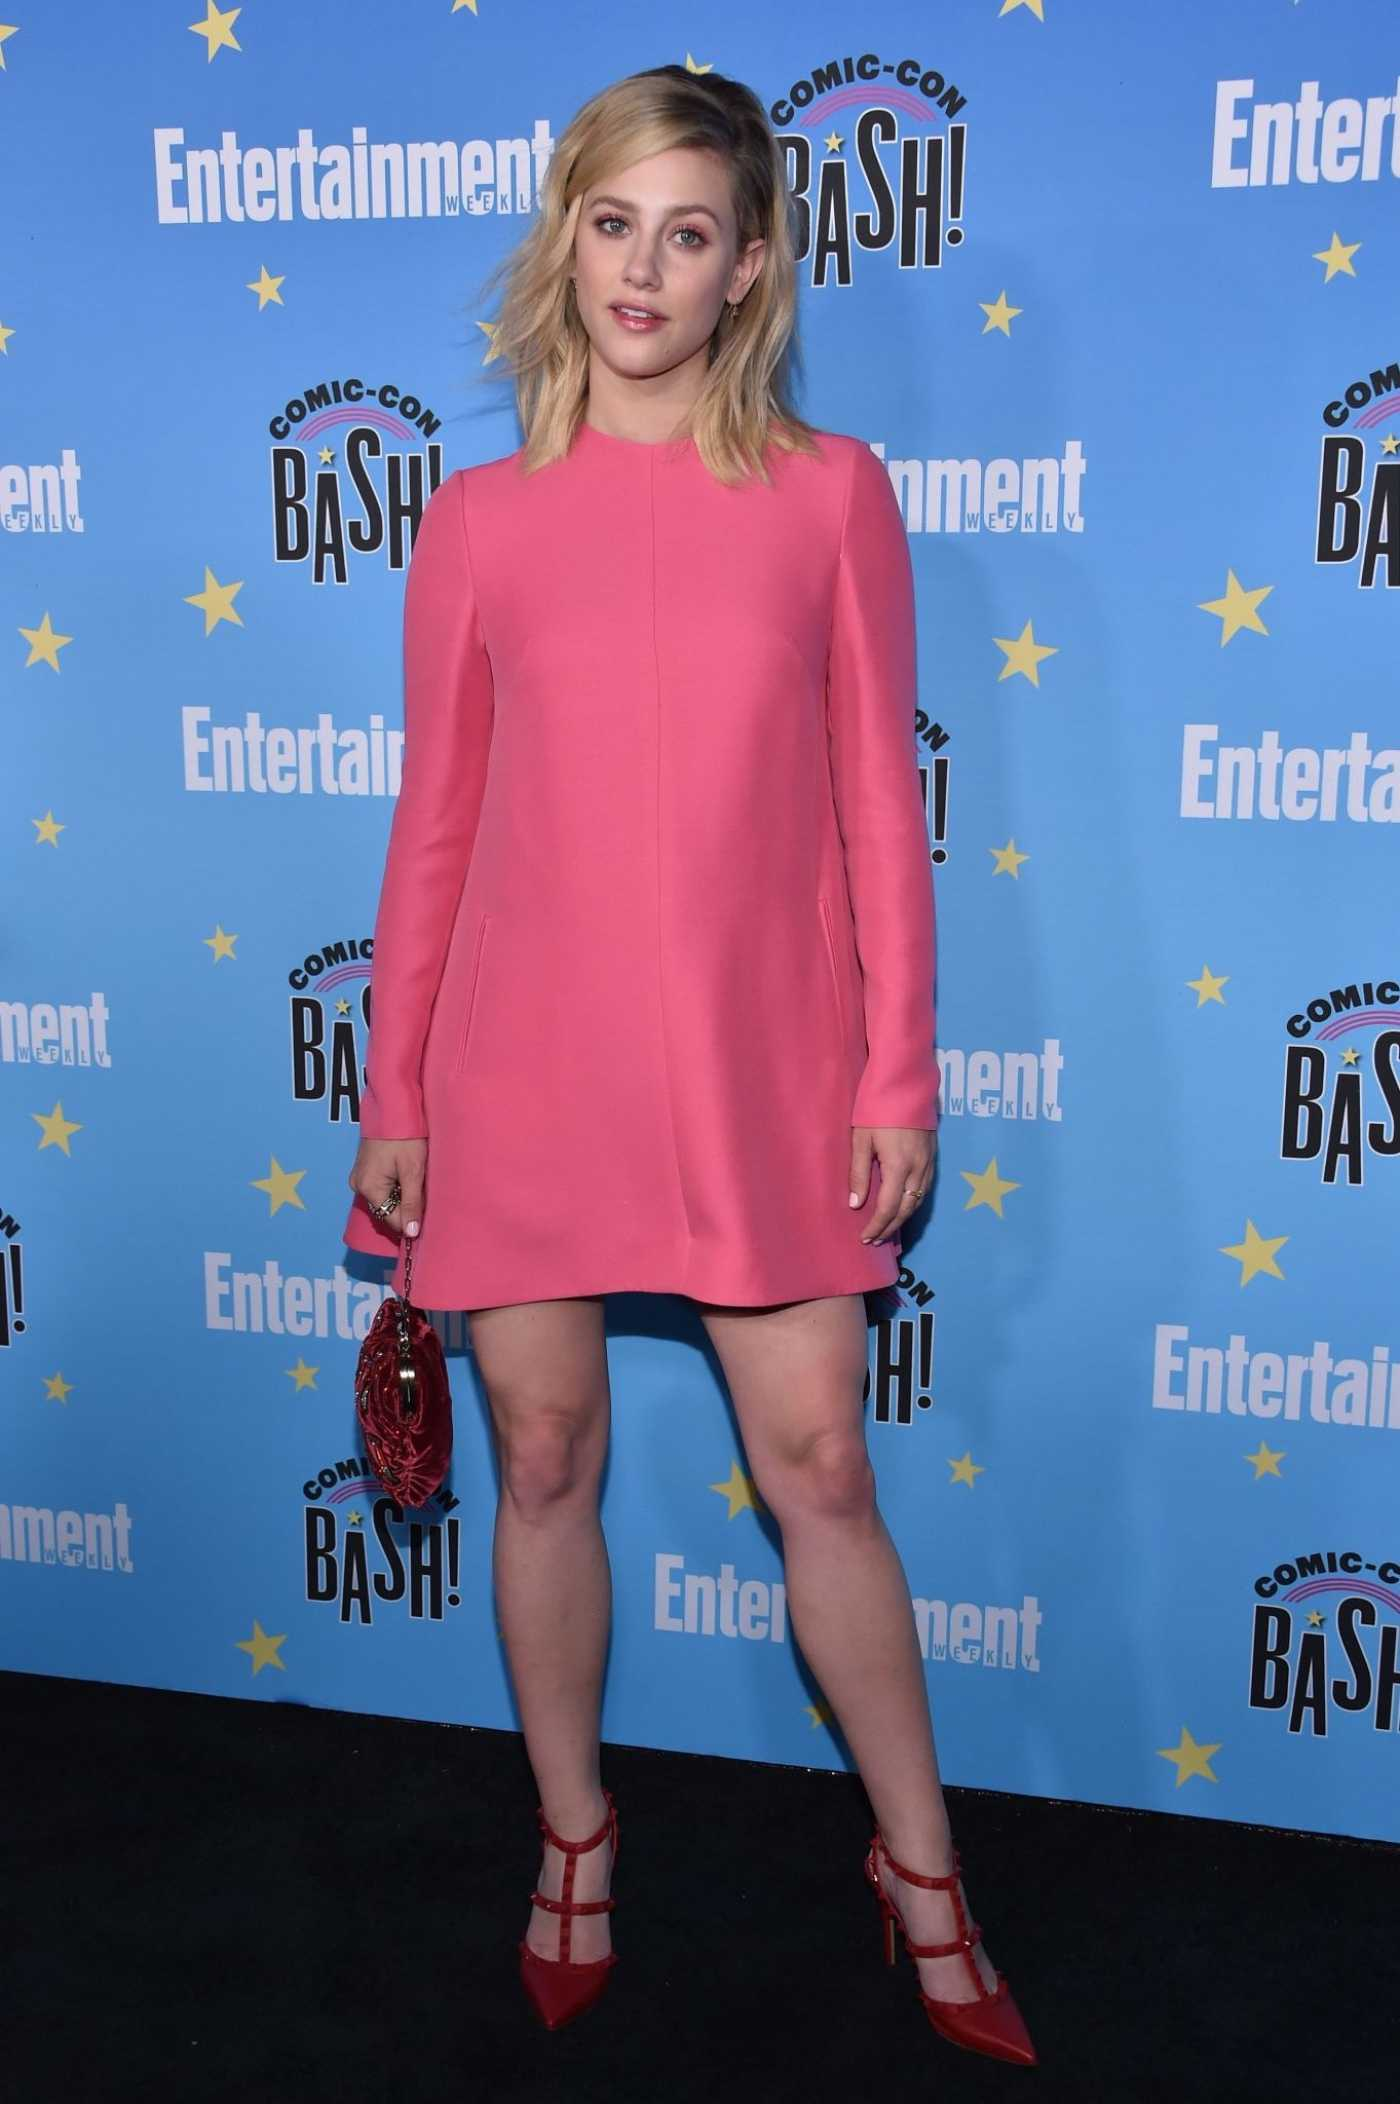 Lili Reinhart Attends Entertainment Weekly's Comic-Con Bash in San Diego 07/20/2019